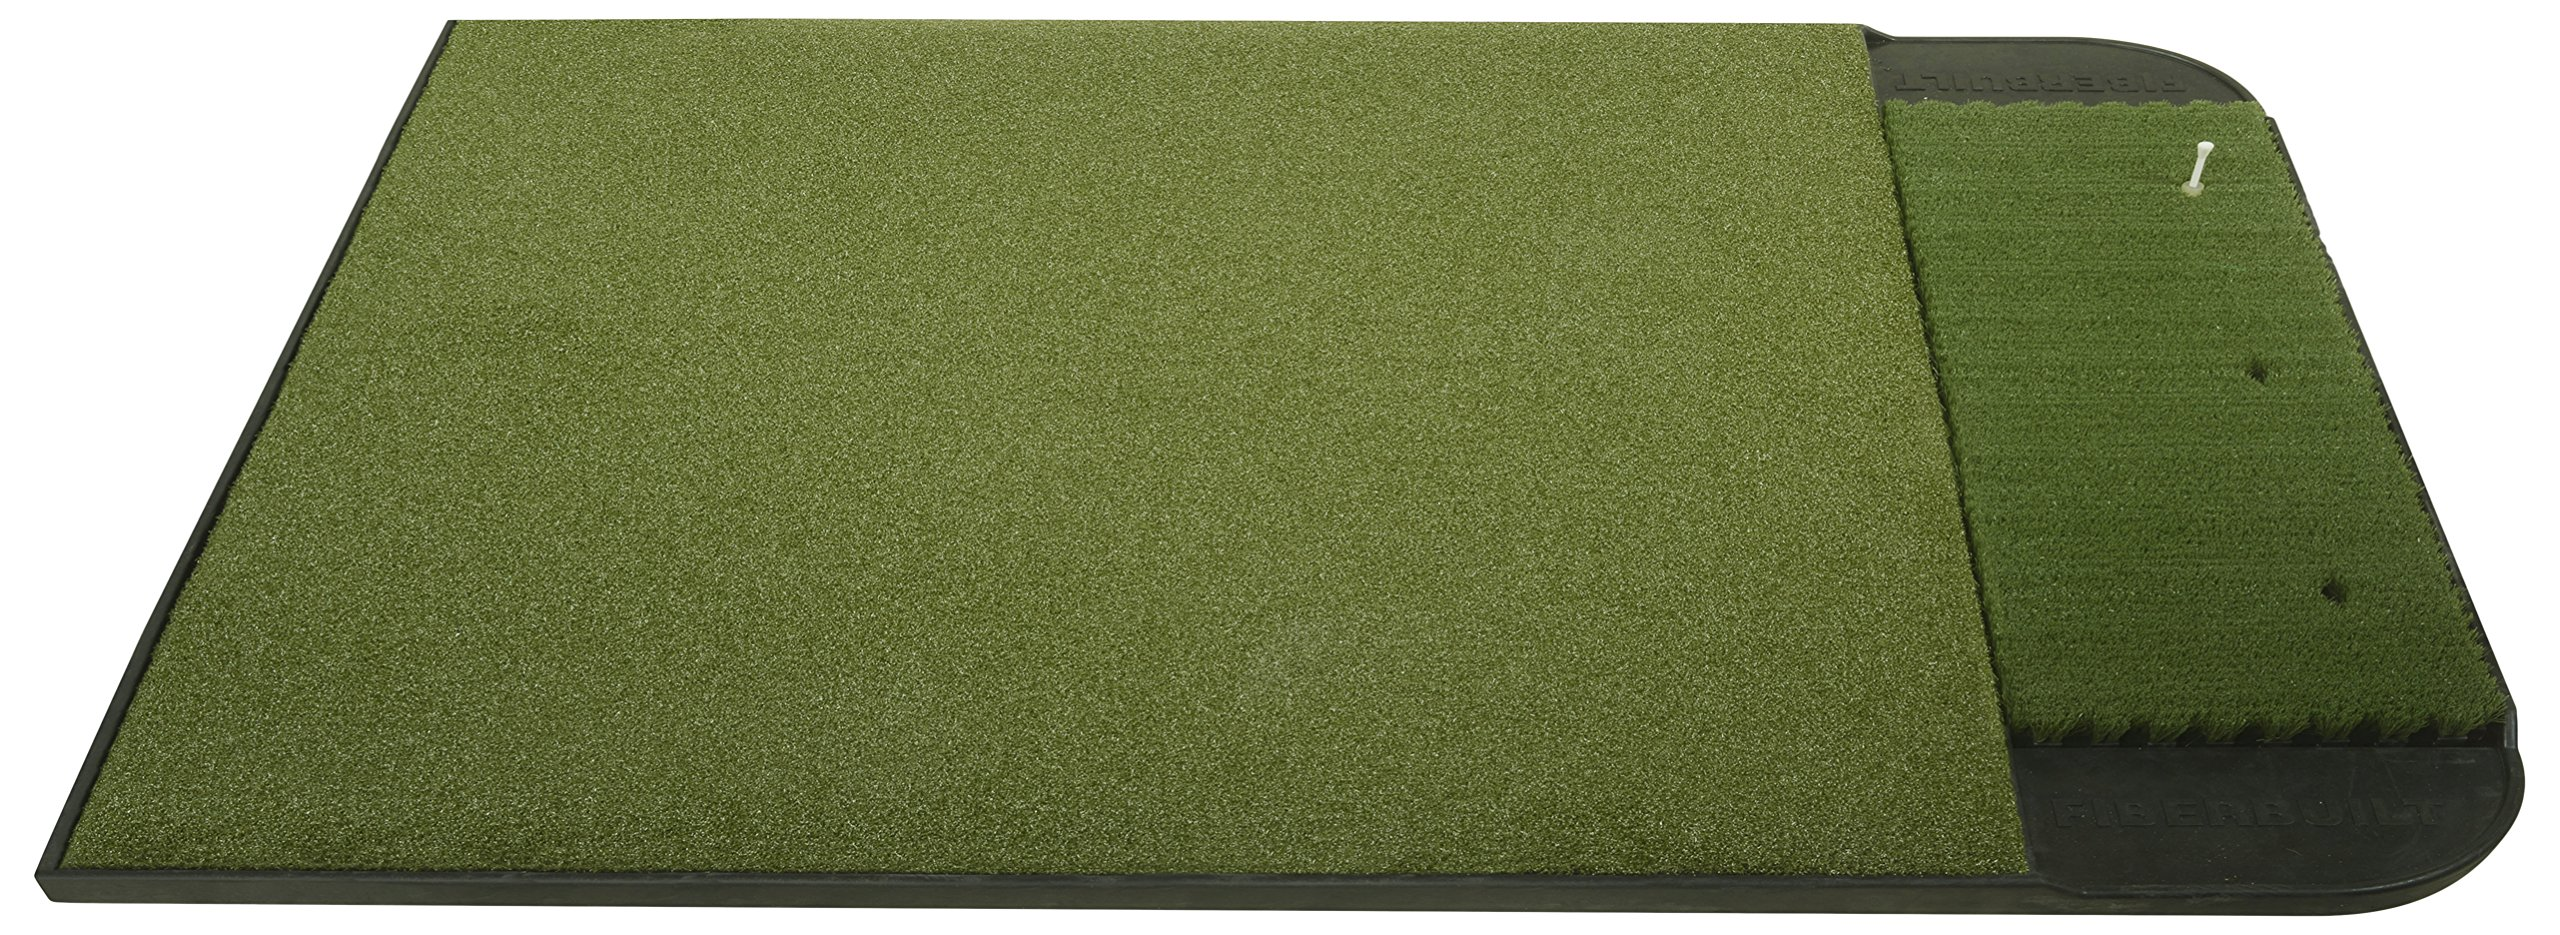 Fiberbuilt 5' x 4' Single Sided (left or right) Golf Hitting Mat - Performance Turf Stance Mat with Fiberbuilt Grass